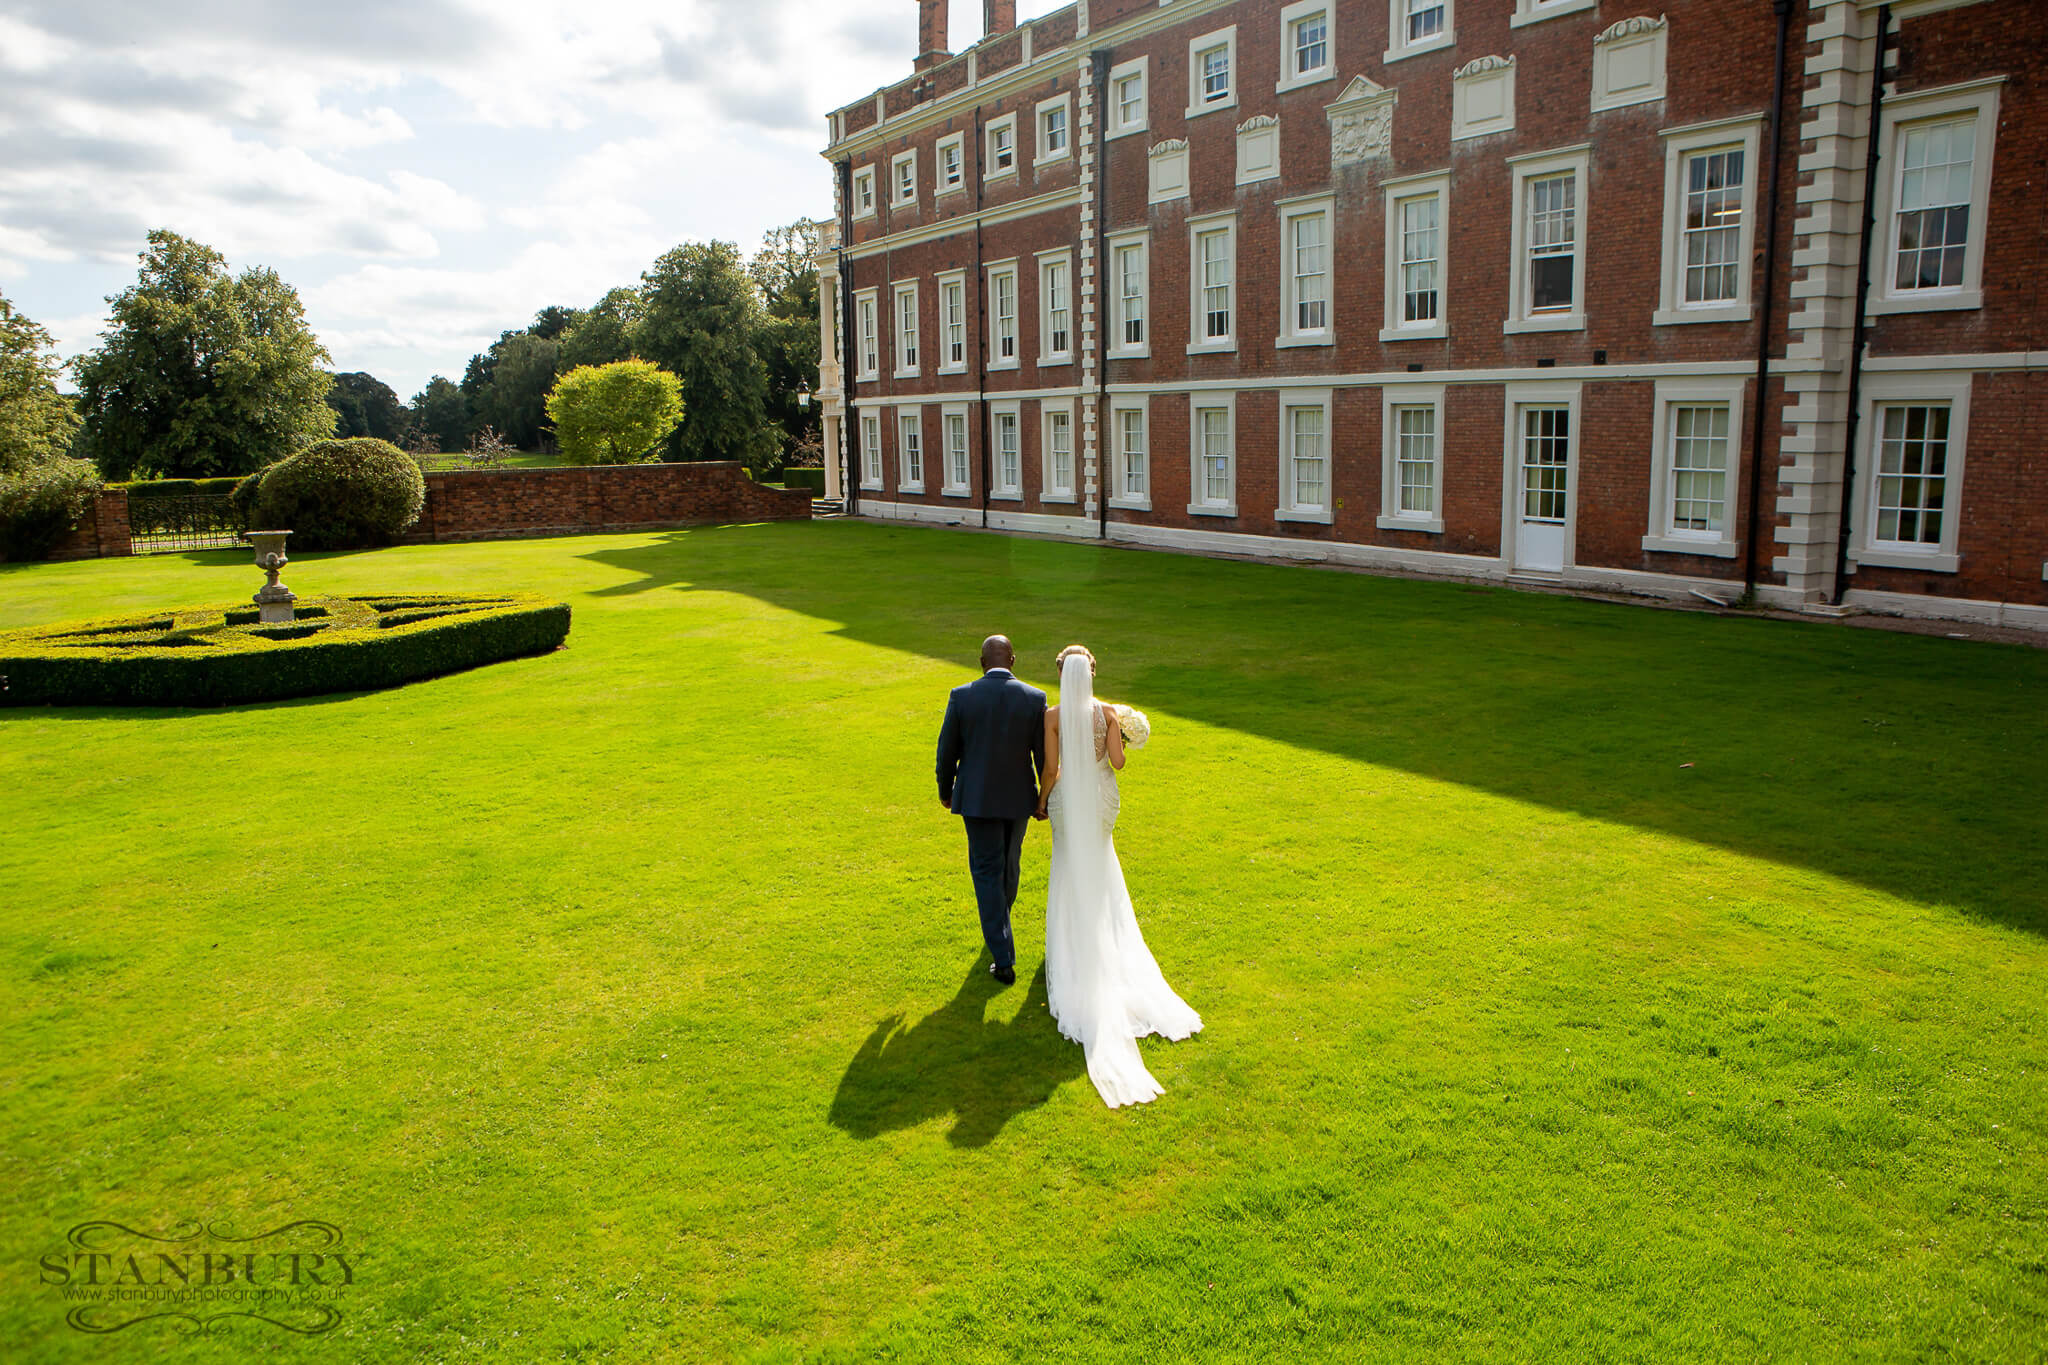 knowsley-hall-wedding-stanbury-photography-024